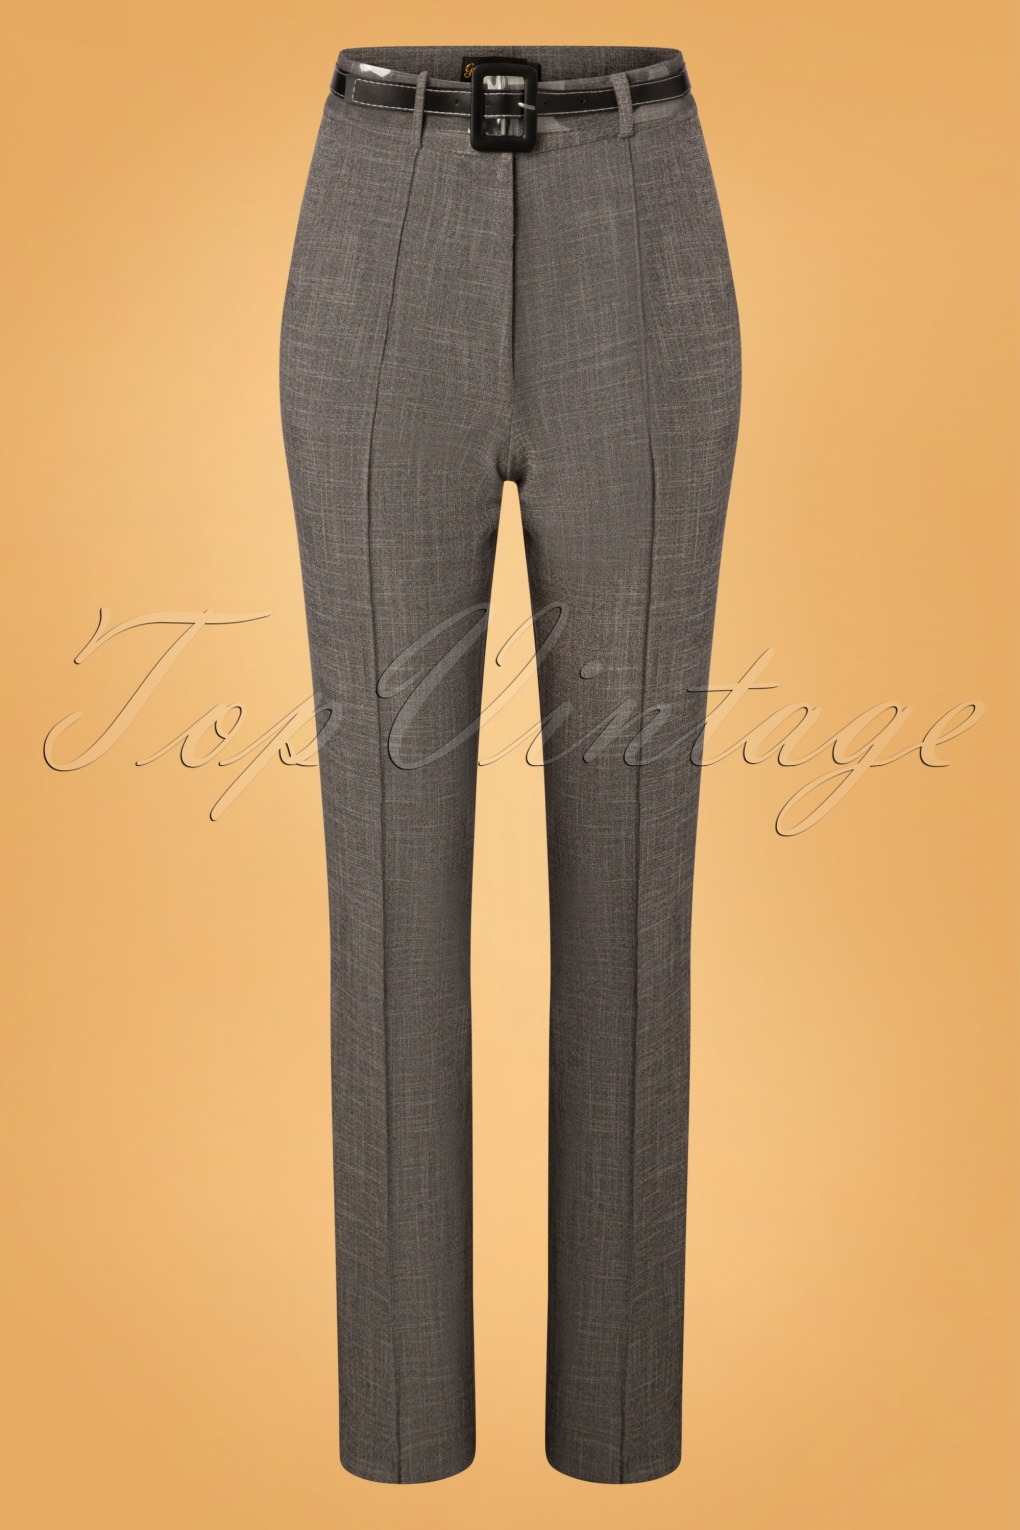 1950s Pants History for Women 50s Ash Pencil Pants in Grey £89.97 AT vintagedancer.com